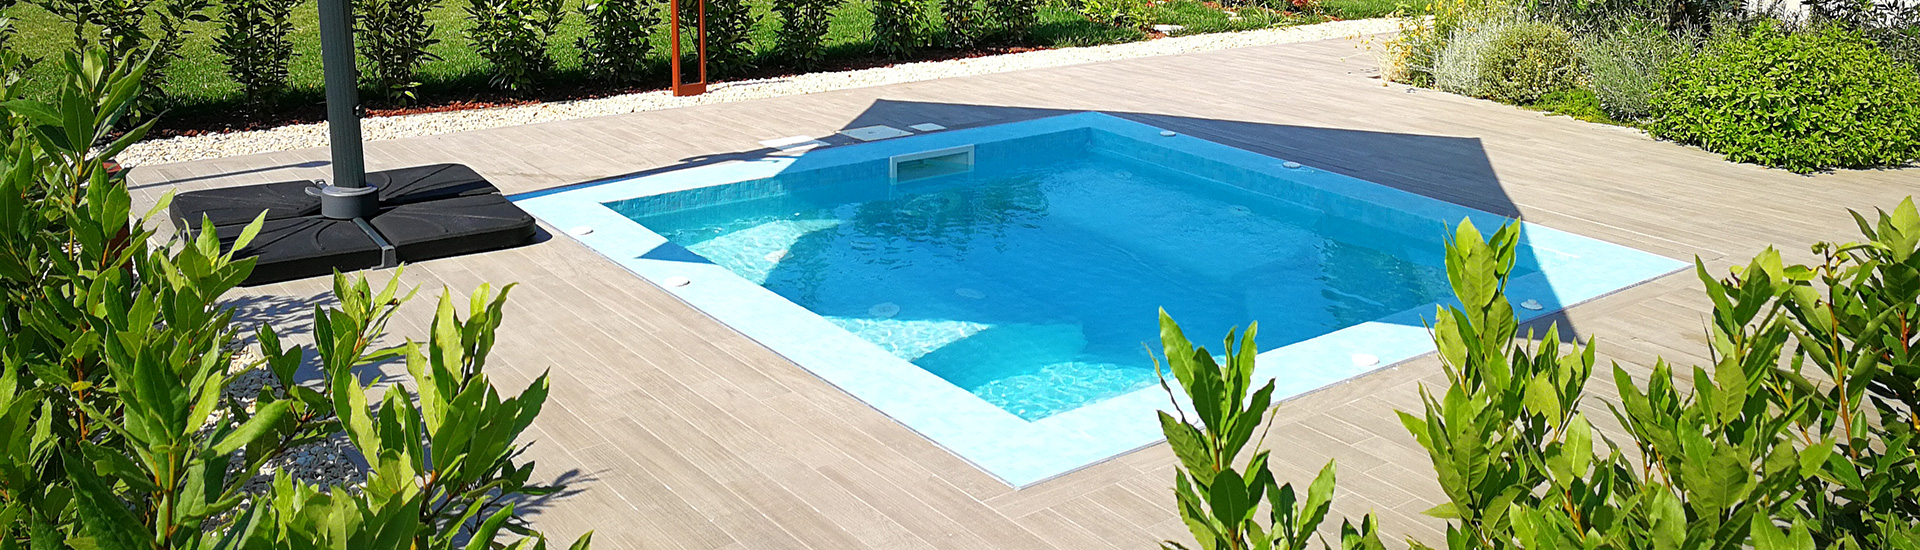 Piscine interrate isoblock